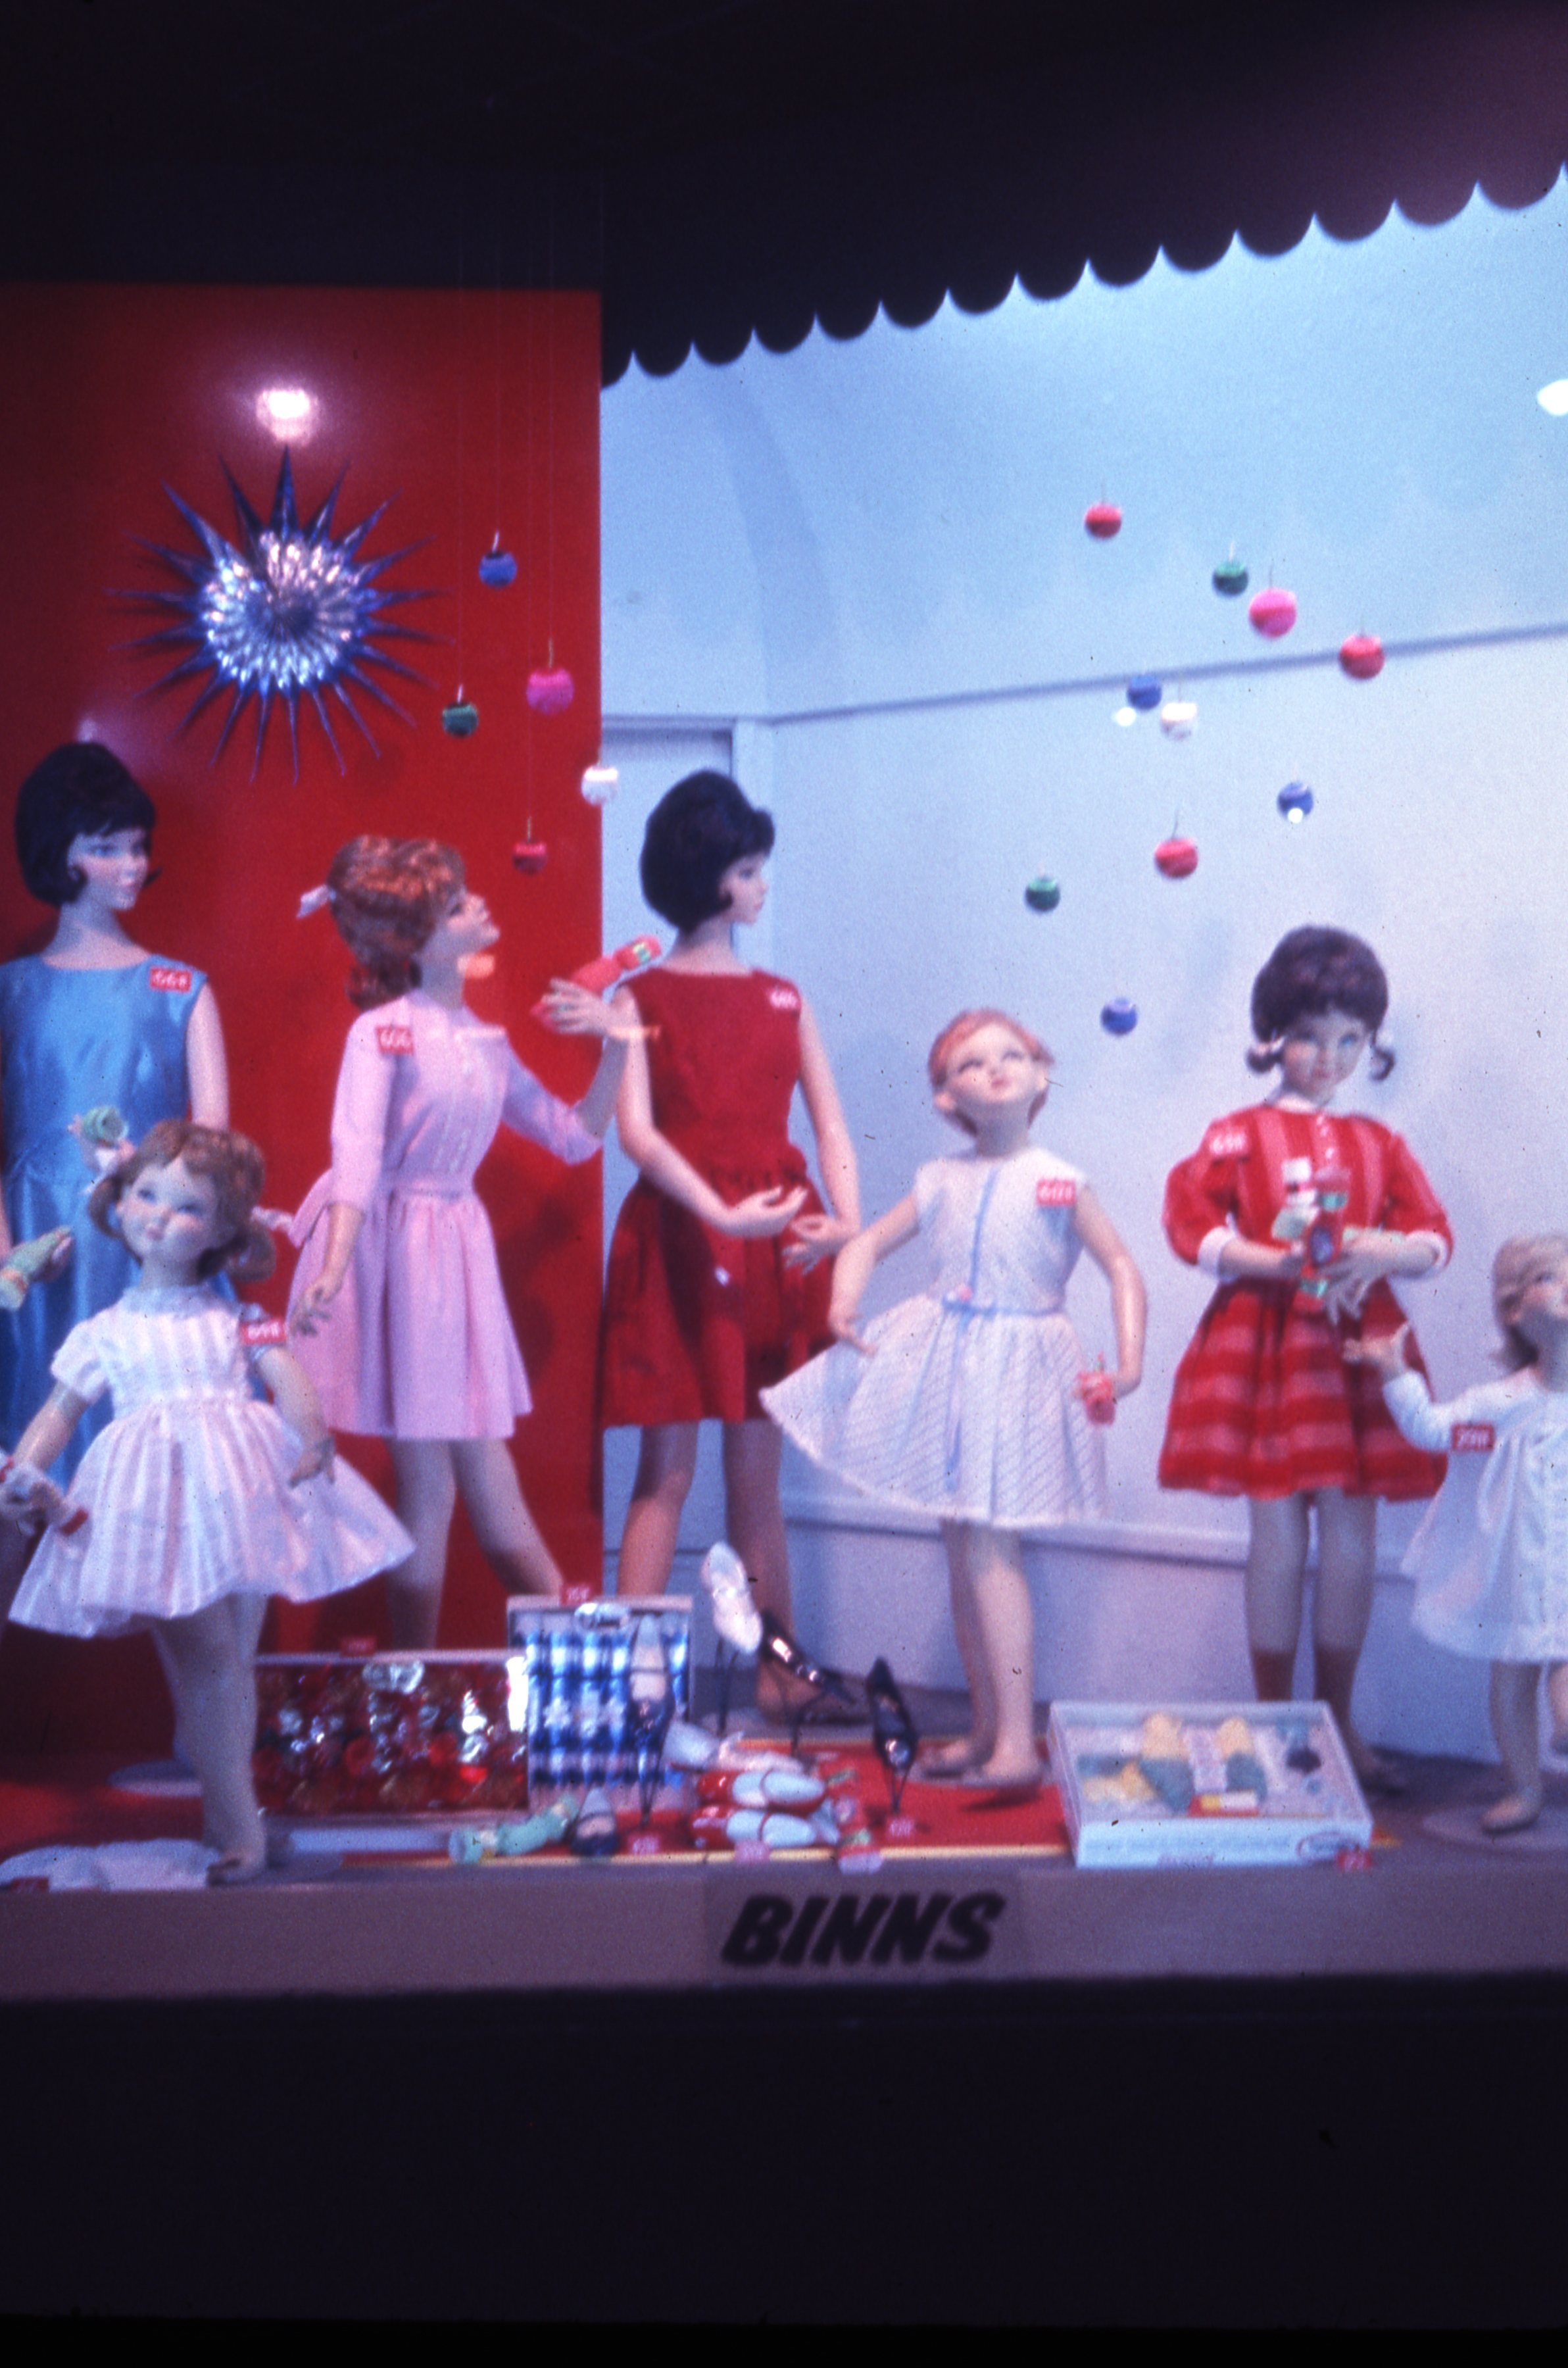 This is a children's Christmas display at Binns department store, Newcastle upon Tyne. This is a 35mm slide. It was taken in 1963.